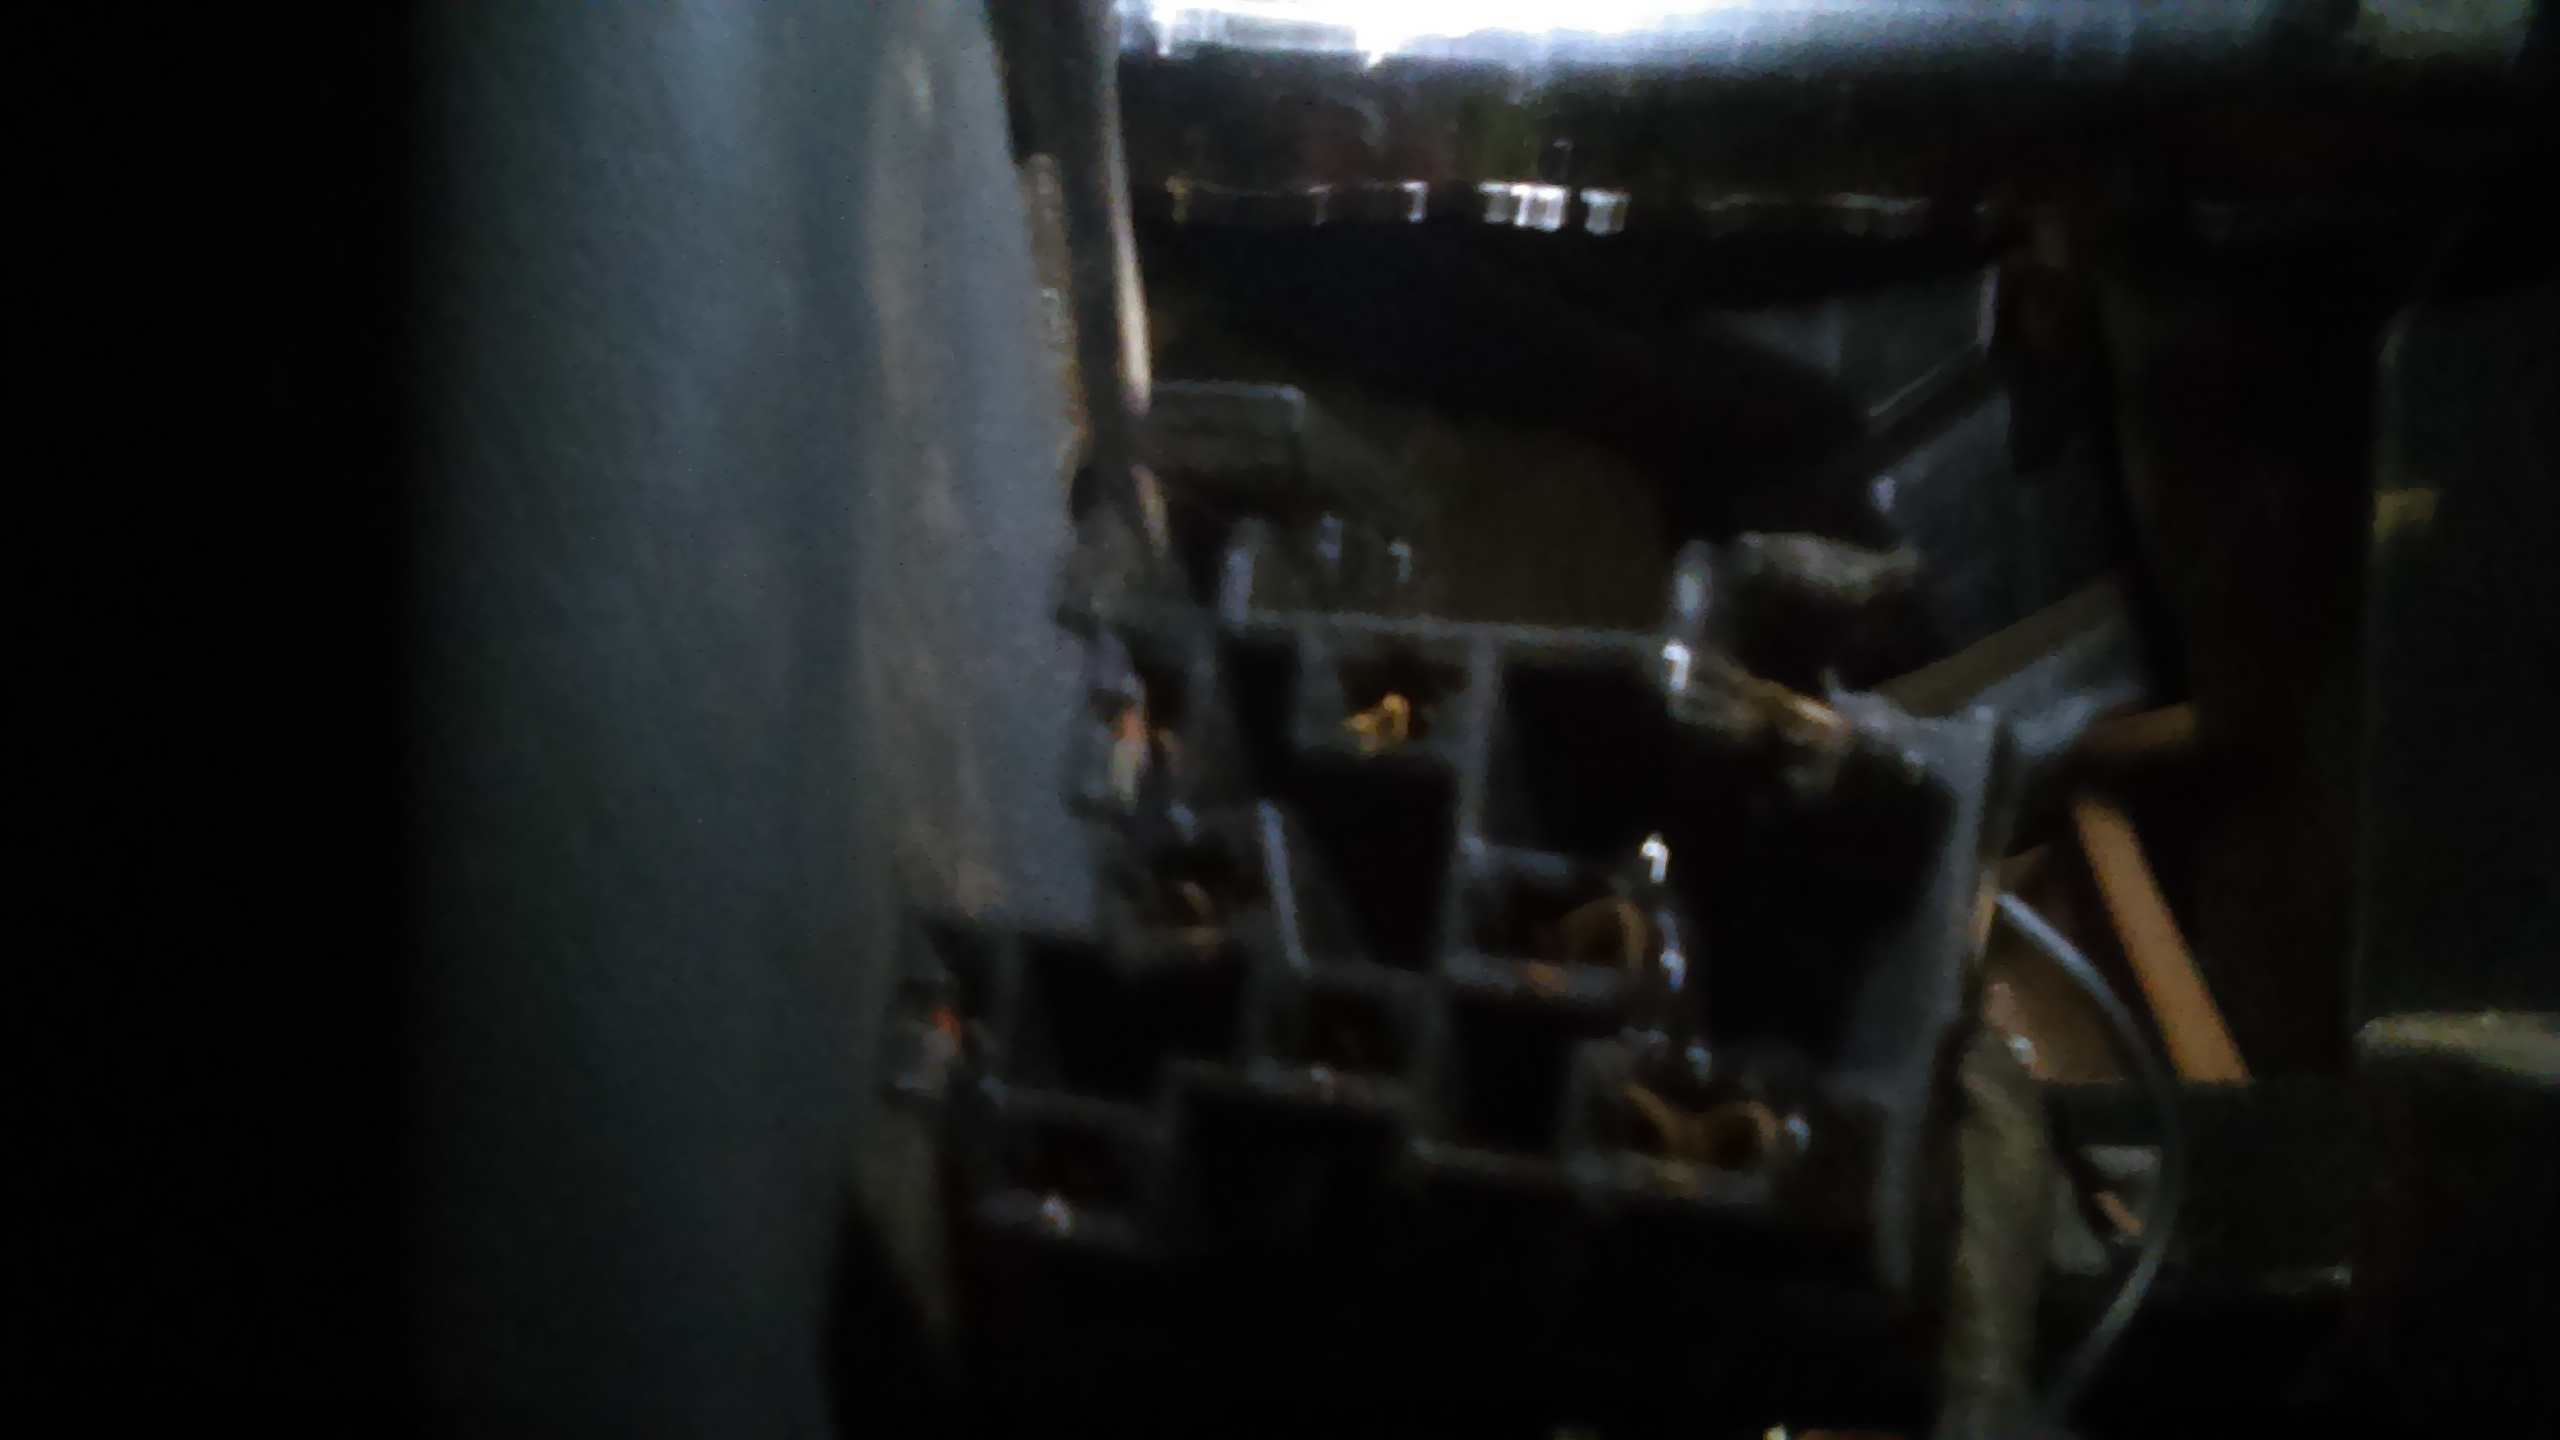 Running Lights Not Working I Have Replaced Tail Light Bulbs What 2005 Durango Fuse Box Thumb